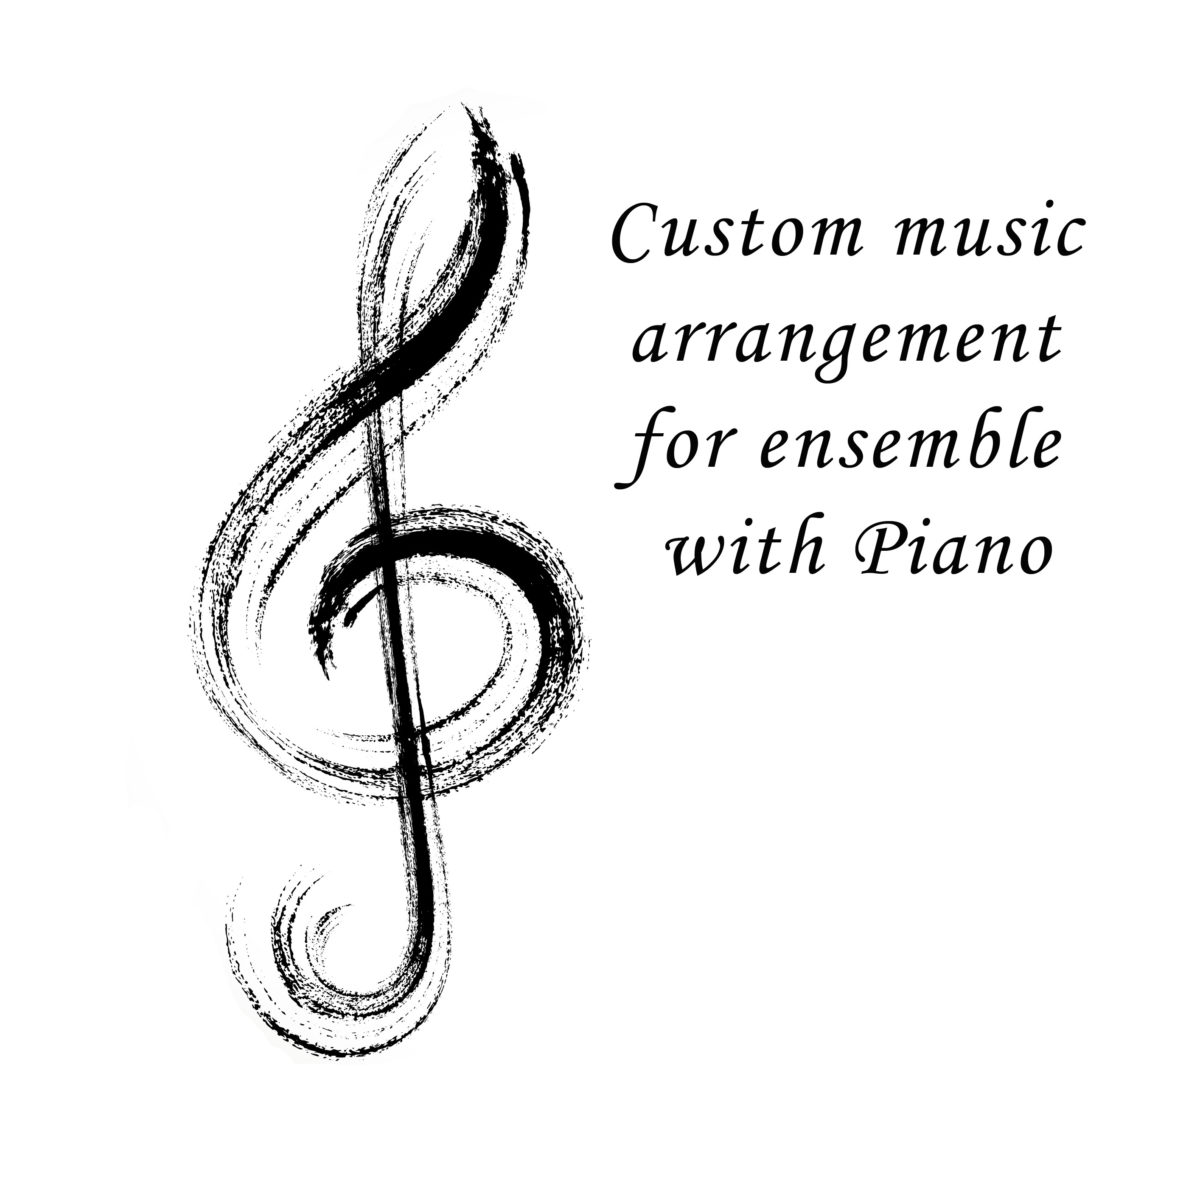 Custom arrangement for ensemble with Piano